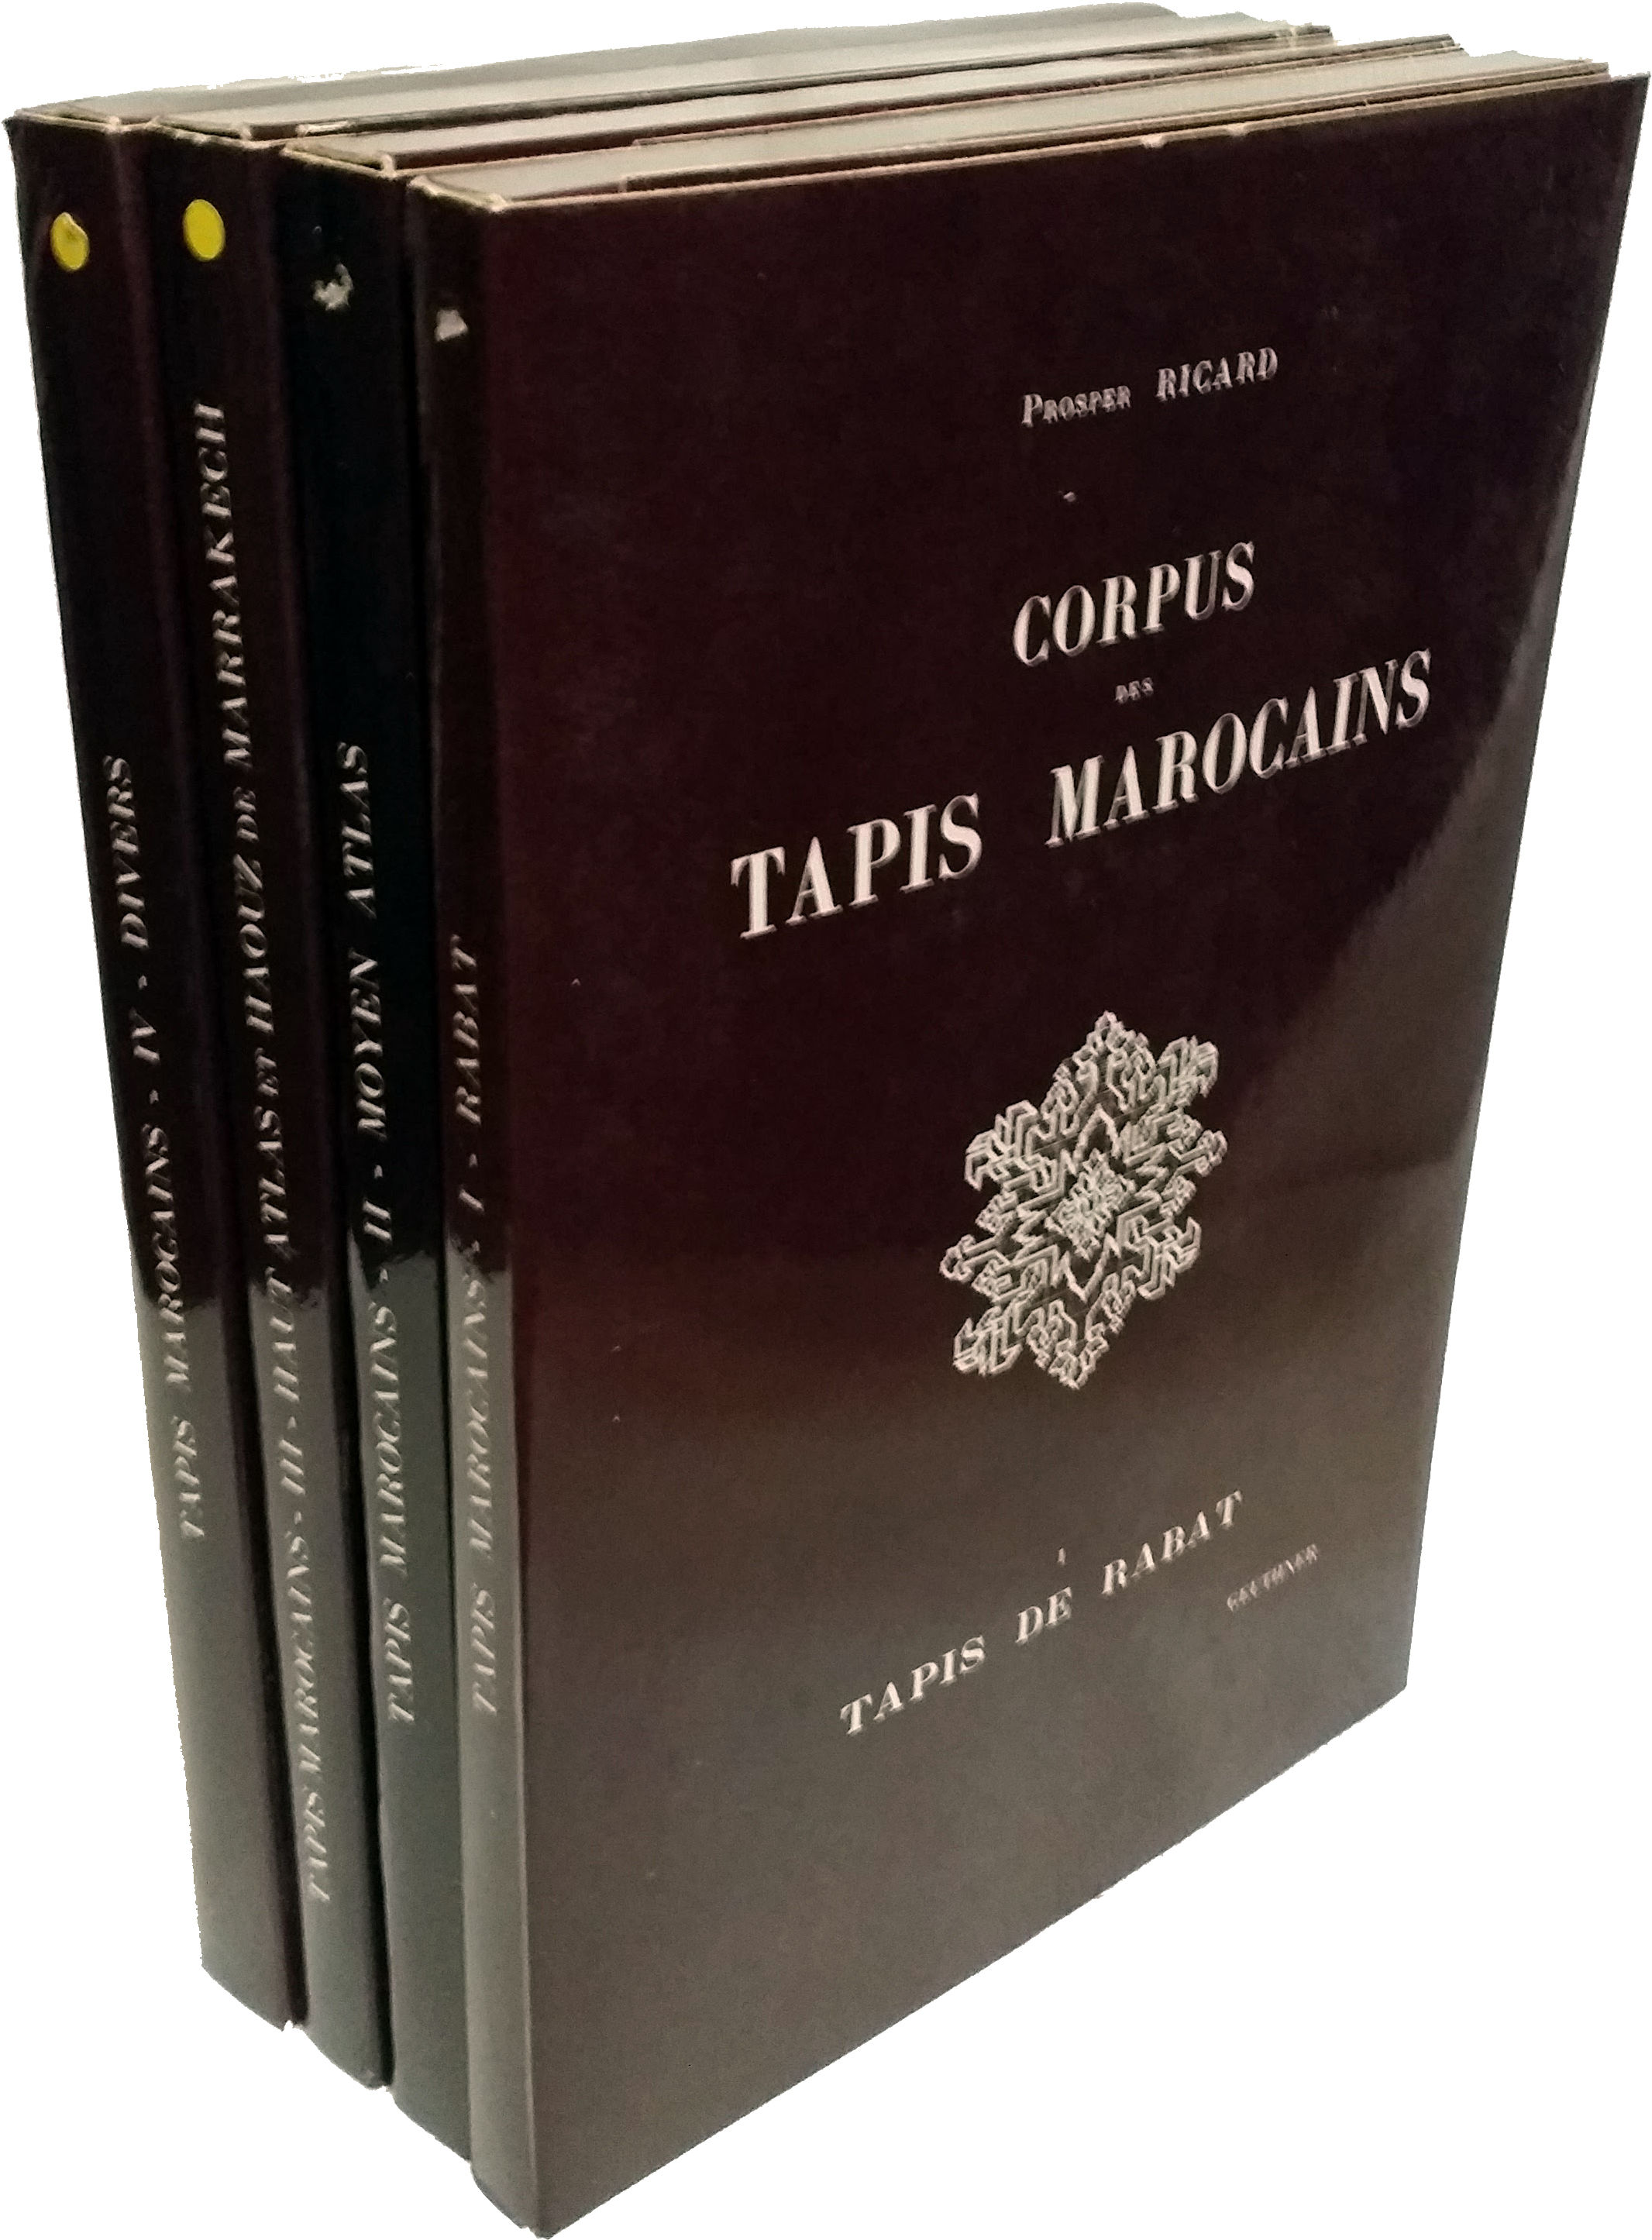 Tapis Marocain Paris Corpus Des Tapis Marocains 4 Volumes By Prosper Ricard 1975 From Rugbooks Ioba And Biblio